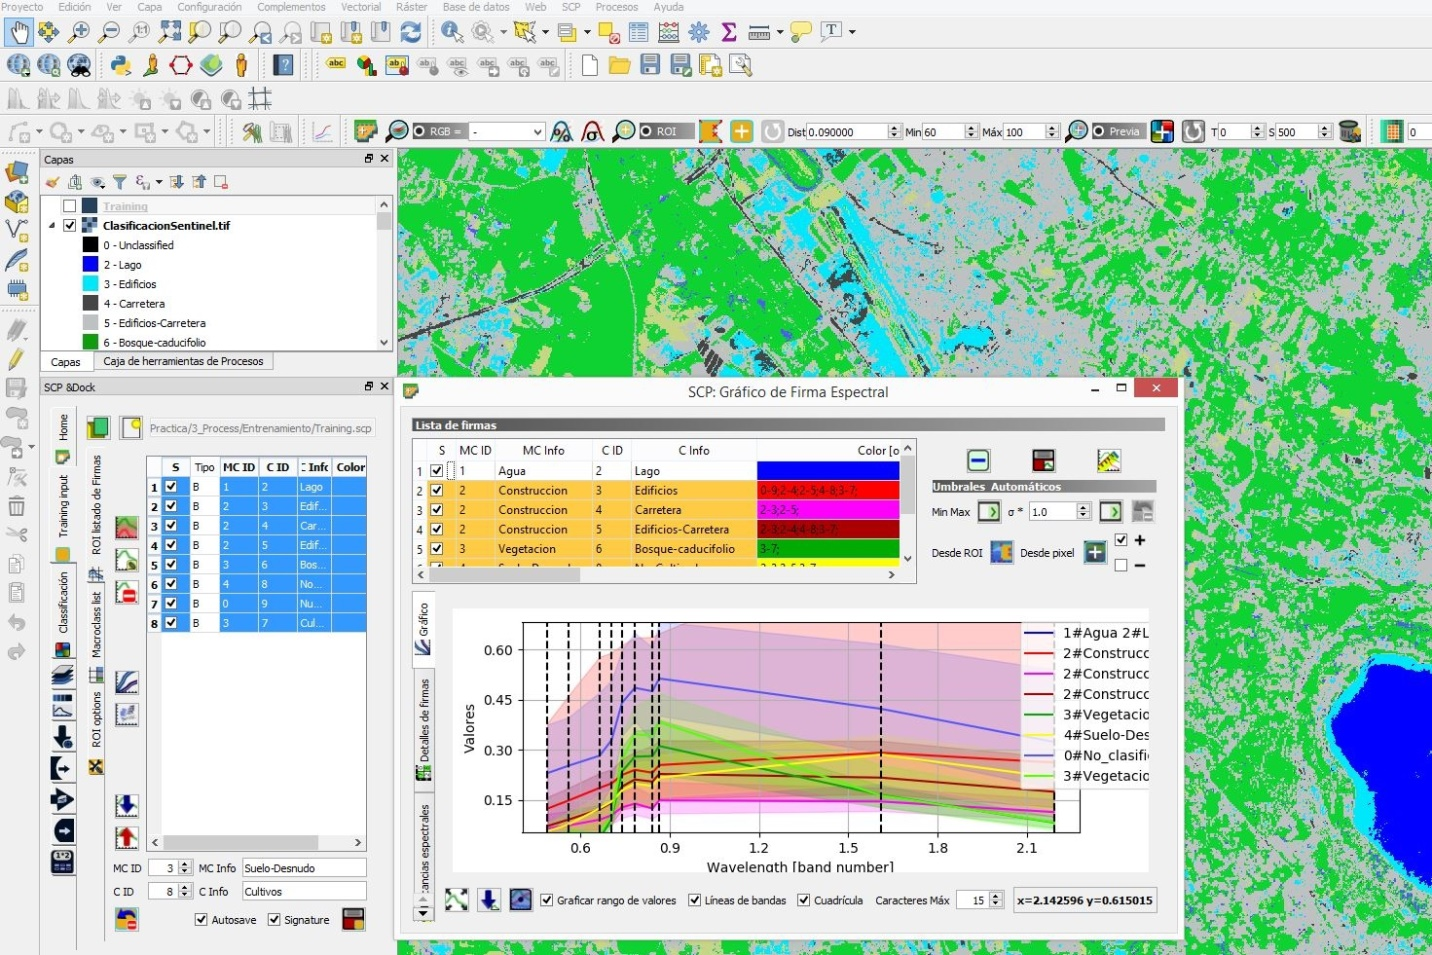 Land cover spectral signatures determination with QGIS 3 and Semi